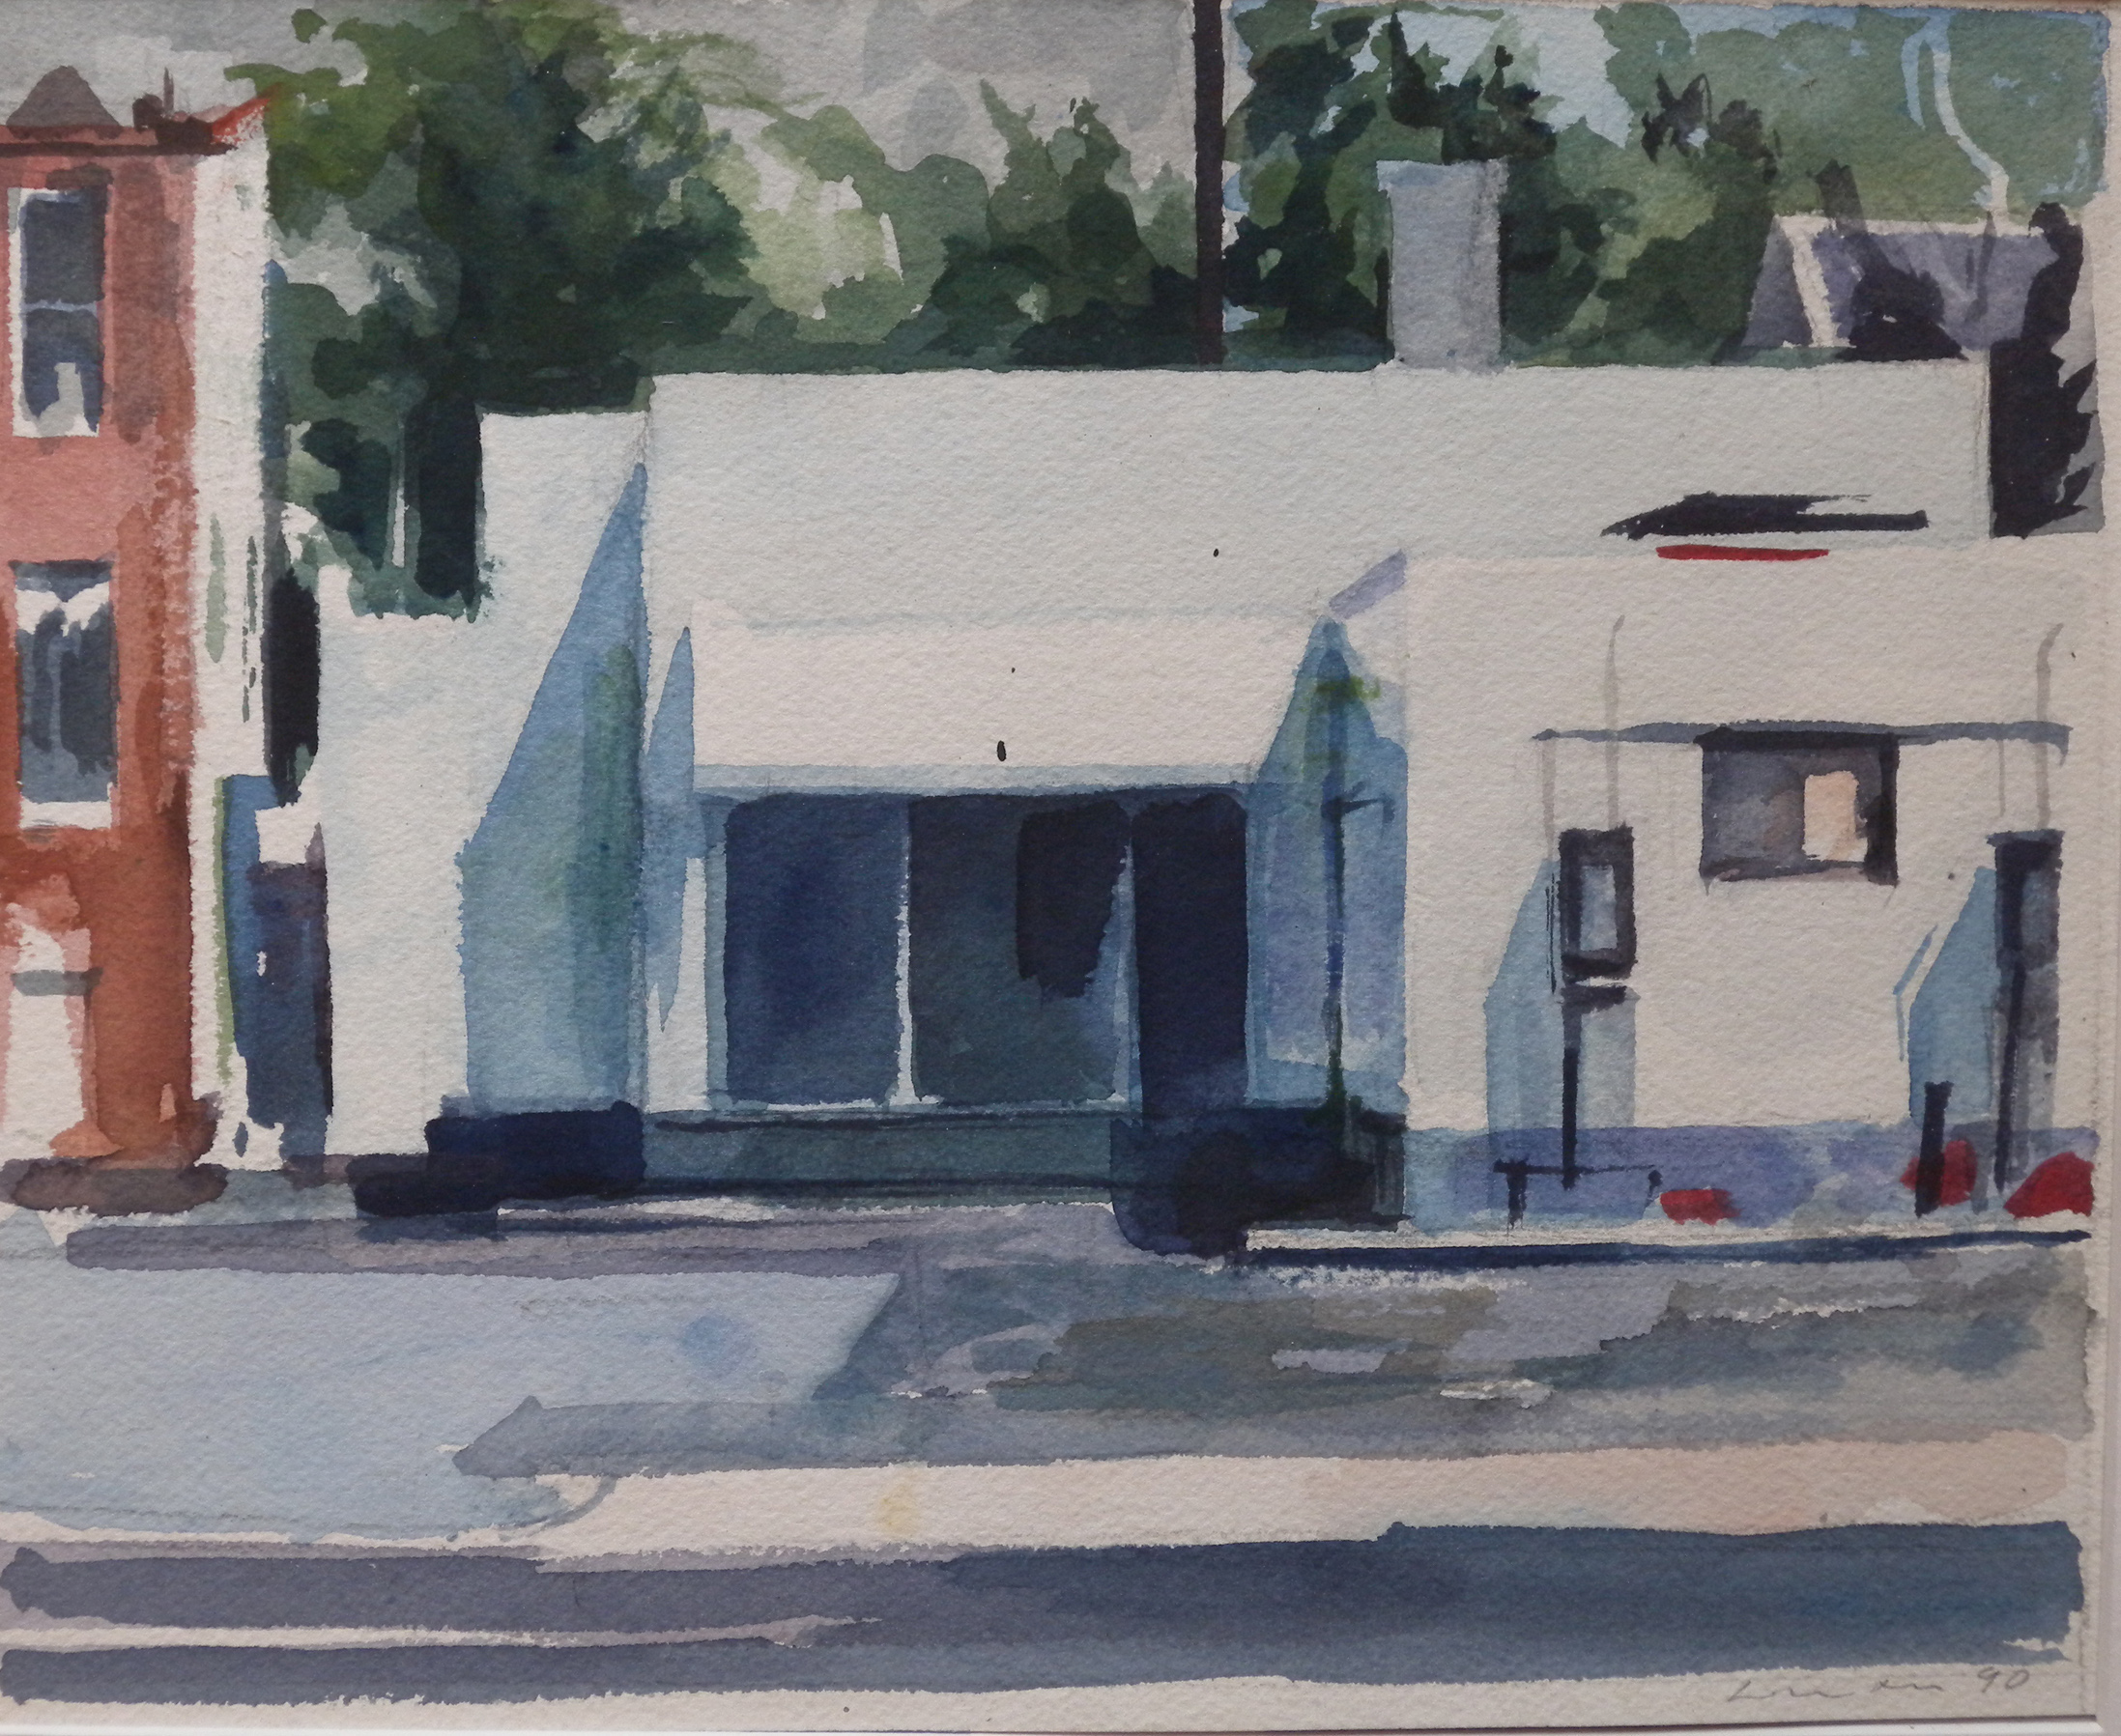 "Empty Gas Station, watercolor on paper, 8 3/4"" x 10 3/4"", 1990                                                                           Private Collection"